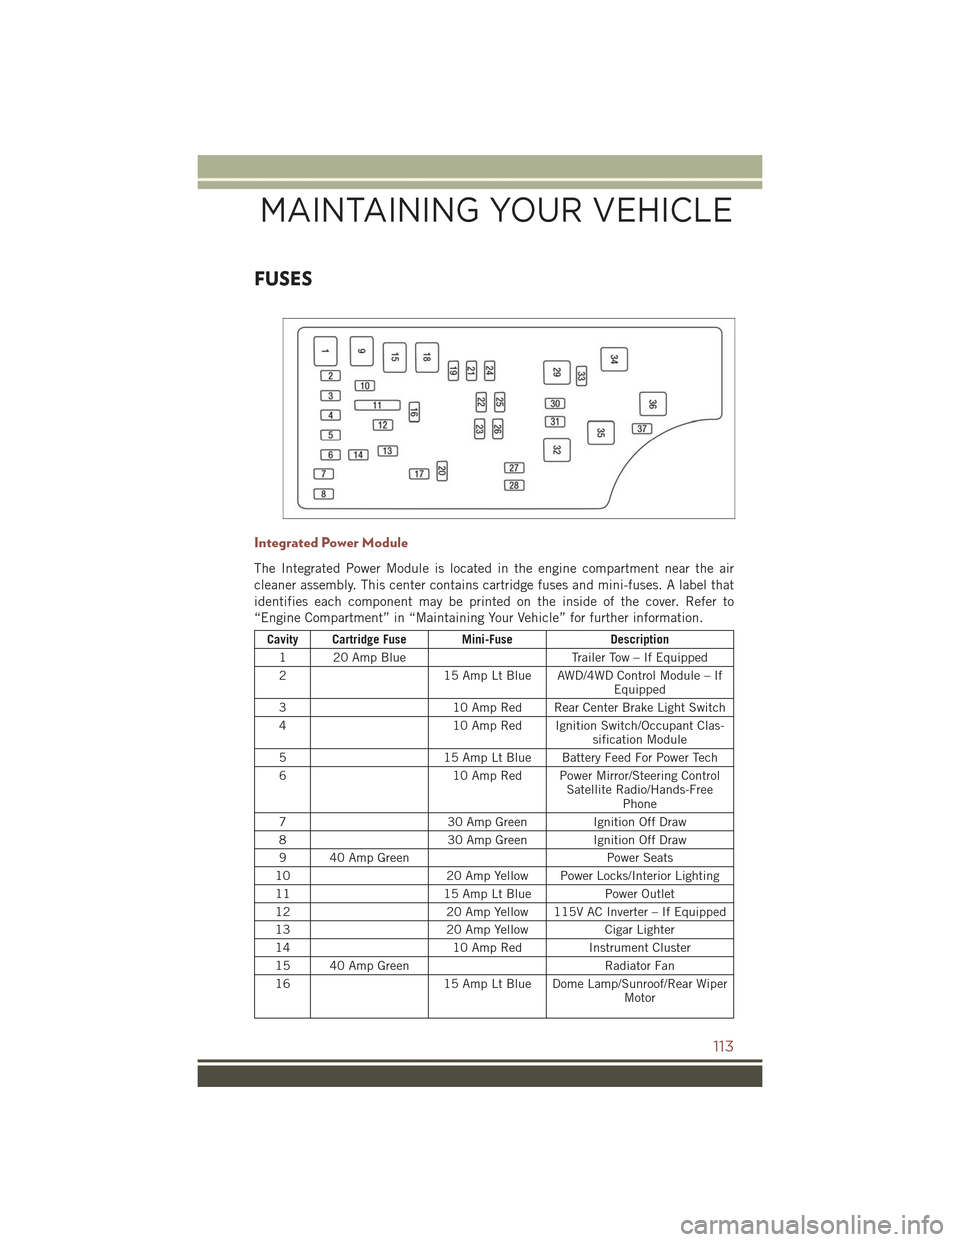 JEEP COMPASS 2015 1.G User Guide FUSES Integrated Power Module The Integrated Power Module is located in the engine compartment near the air cleaner assembly. This center contains cartridge fuses and mini-fuses. A label that identifi